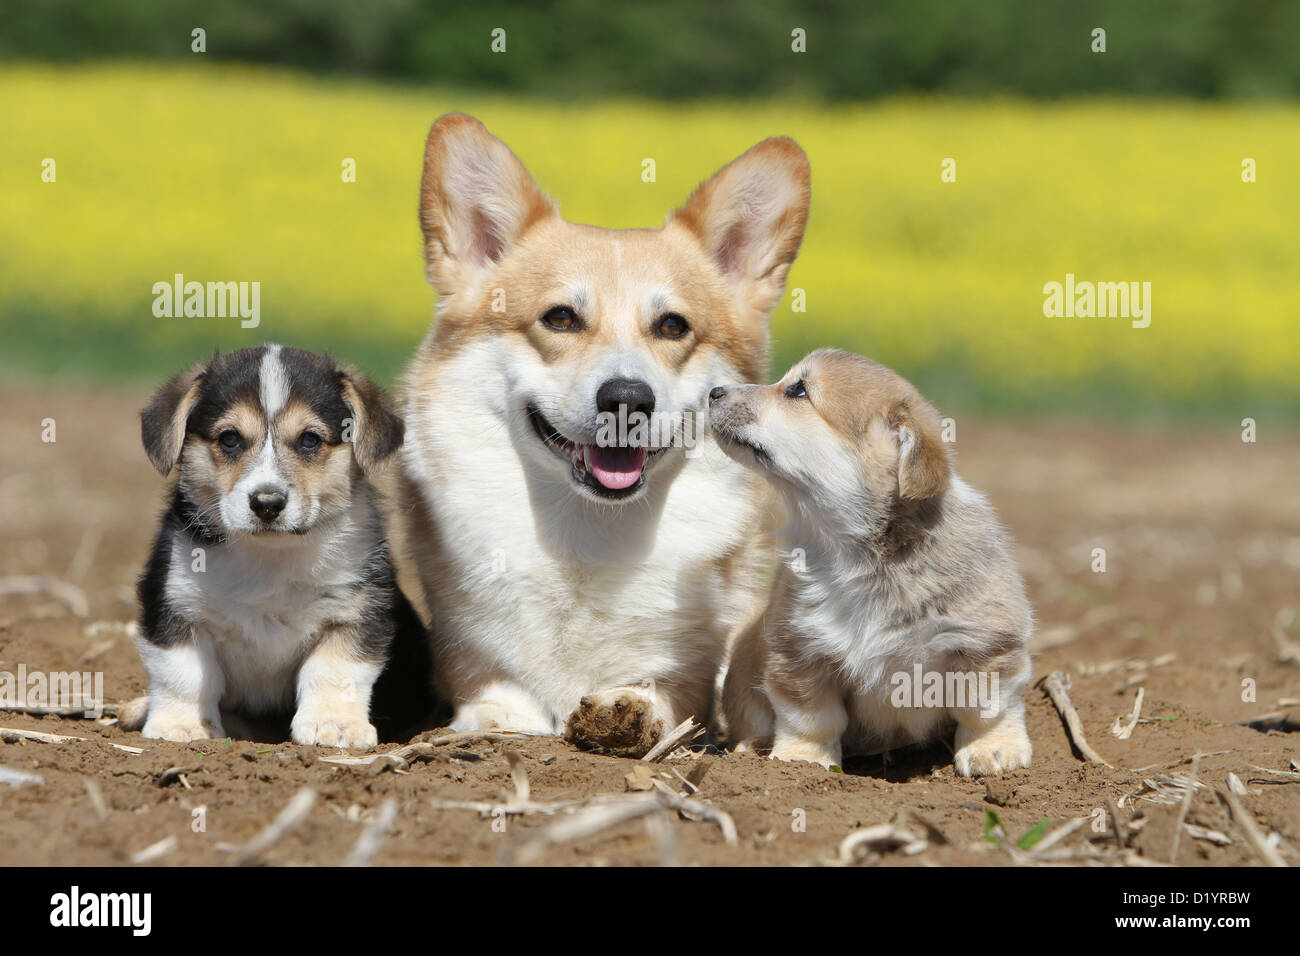 Dog  Pembroke Welsh corgi adult and two puppies different colors sitting - Stock Image